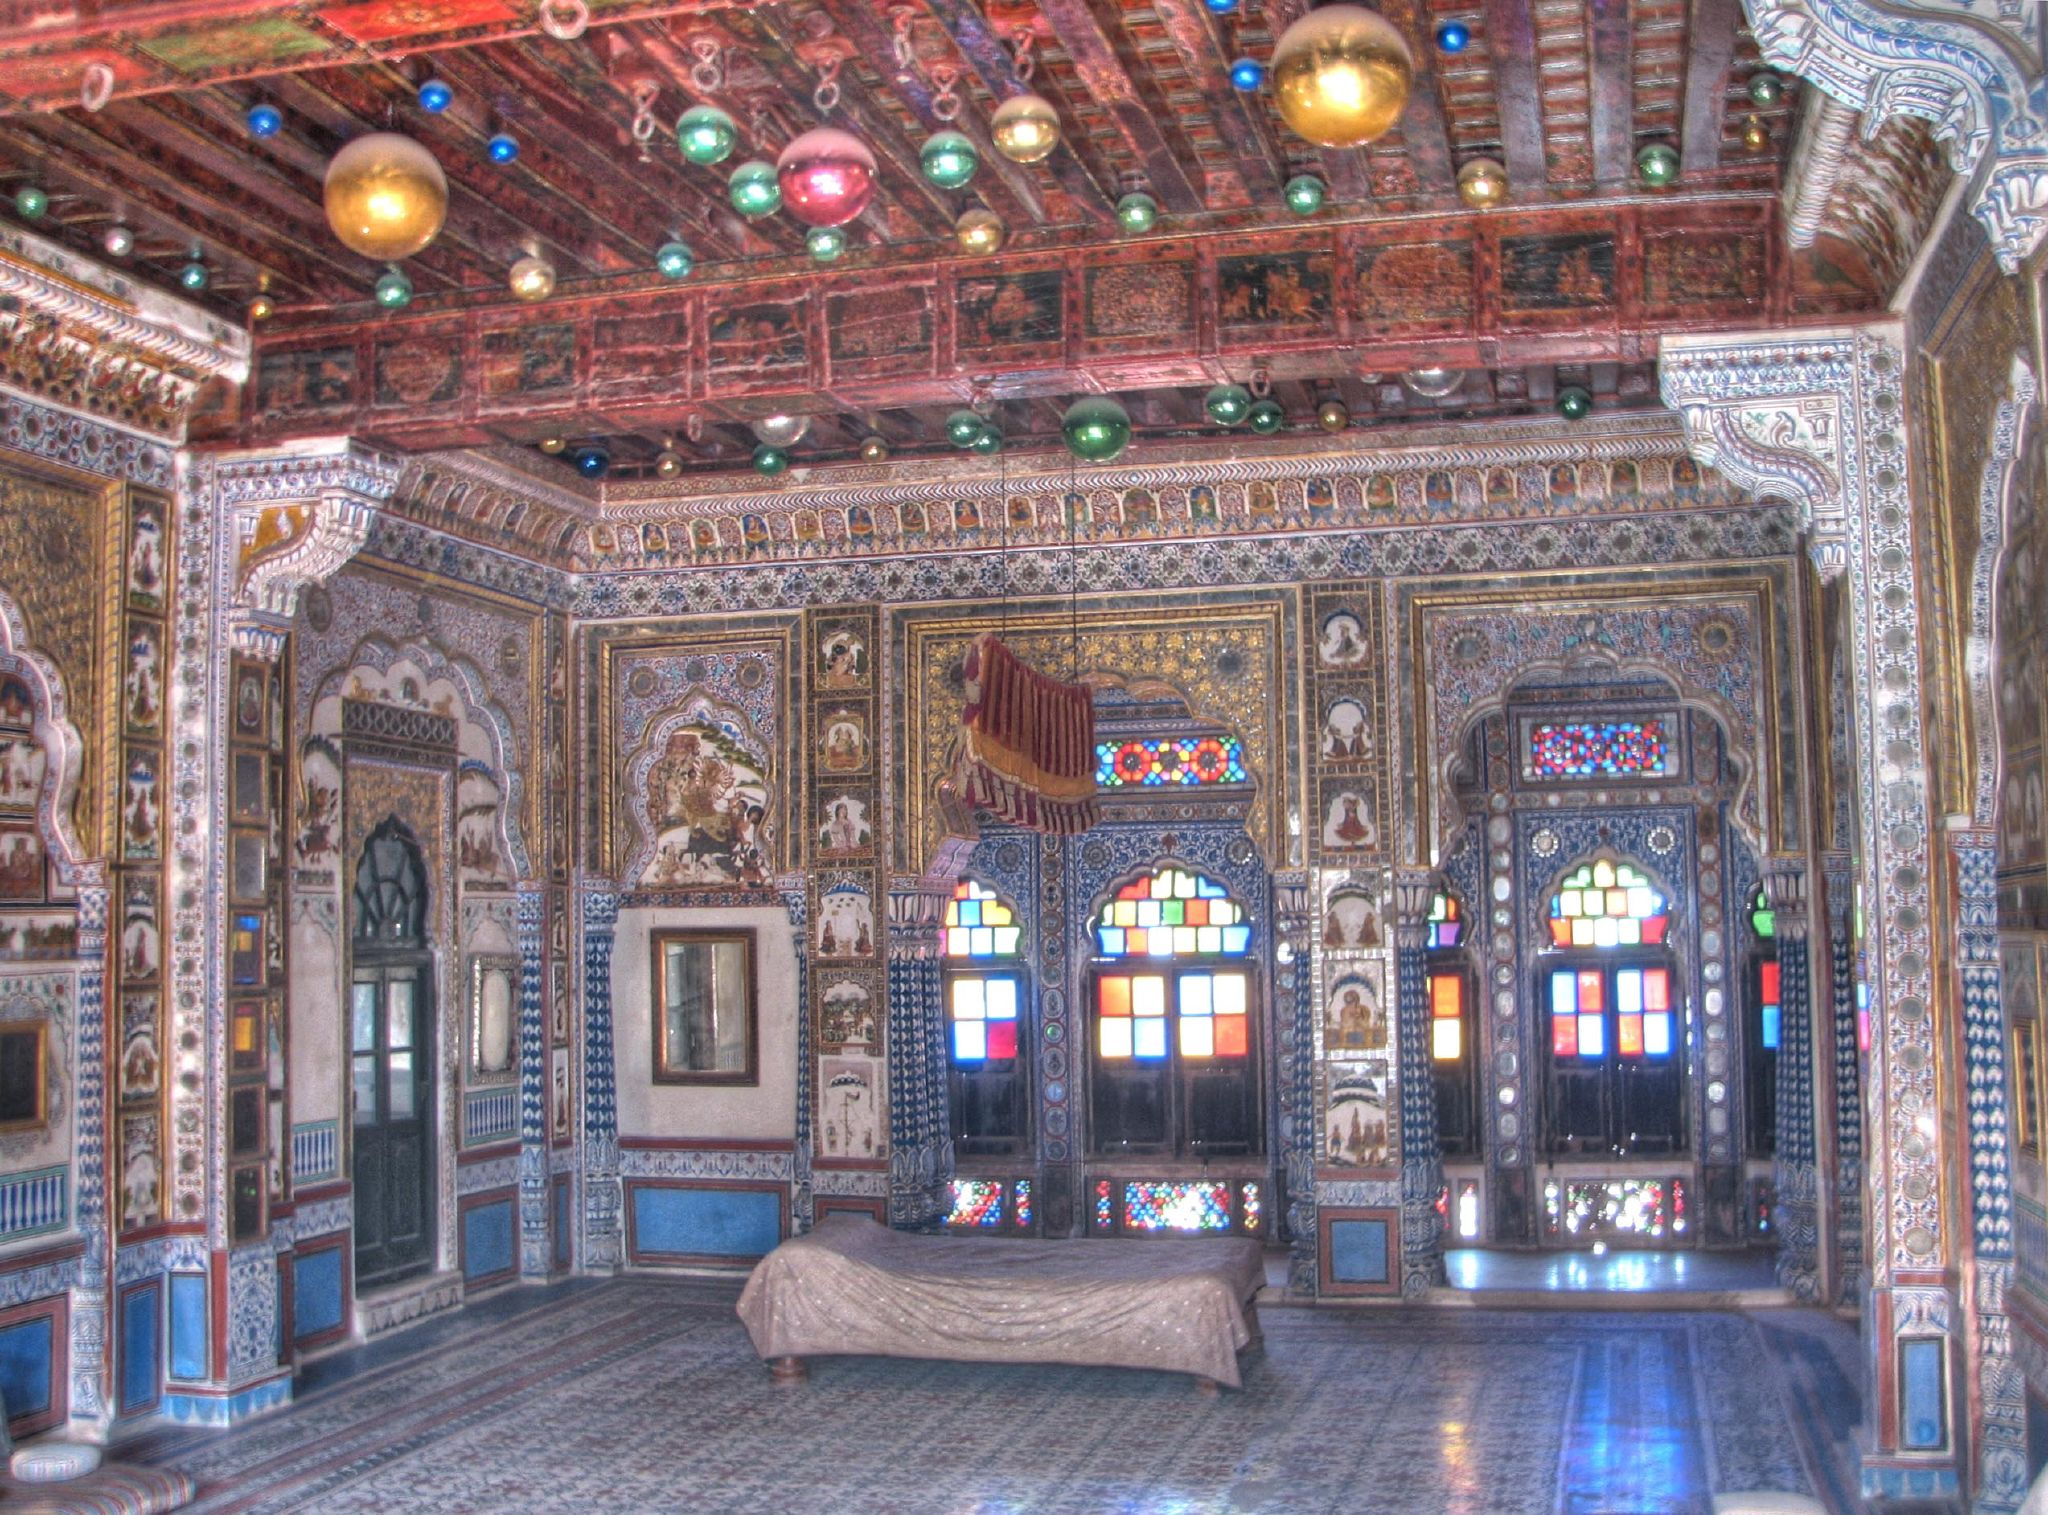 File:Maharajas room, within the Mehrangarh Fort Palace.jpg